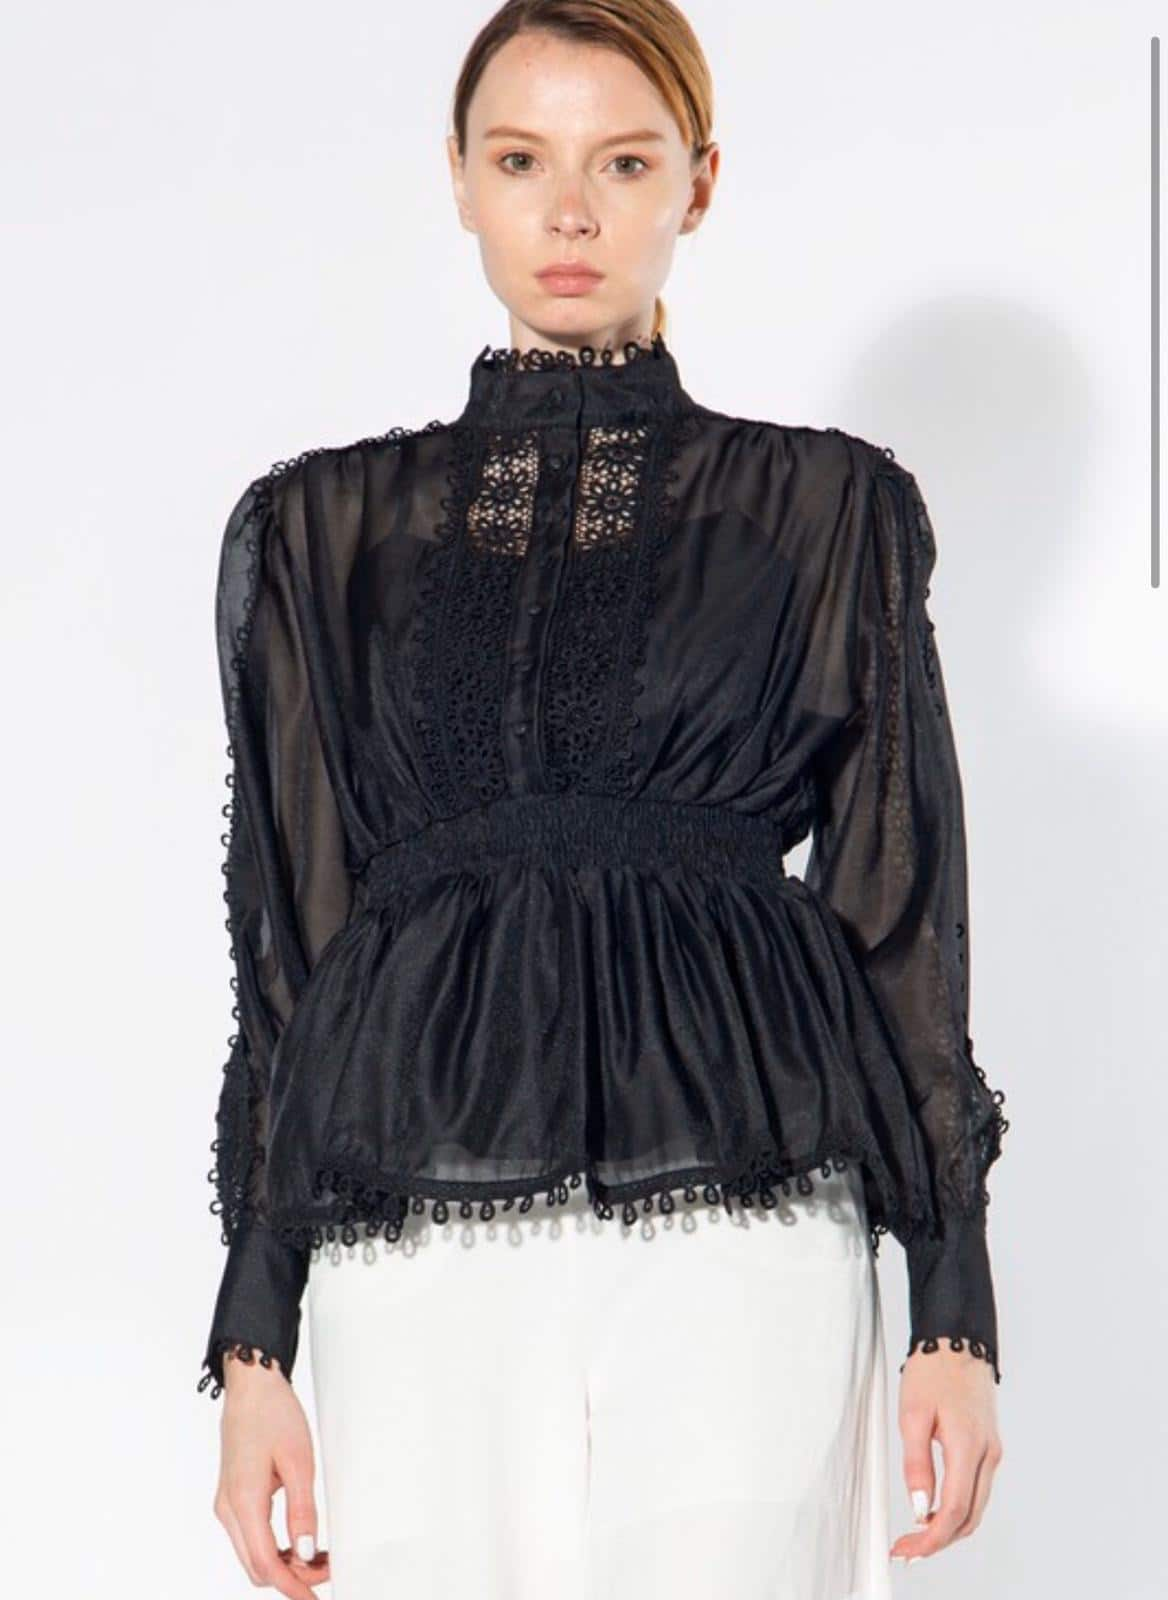 Black alicia-lace-trimmed-top For Fall Winter Spring Summer